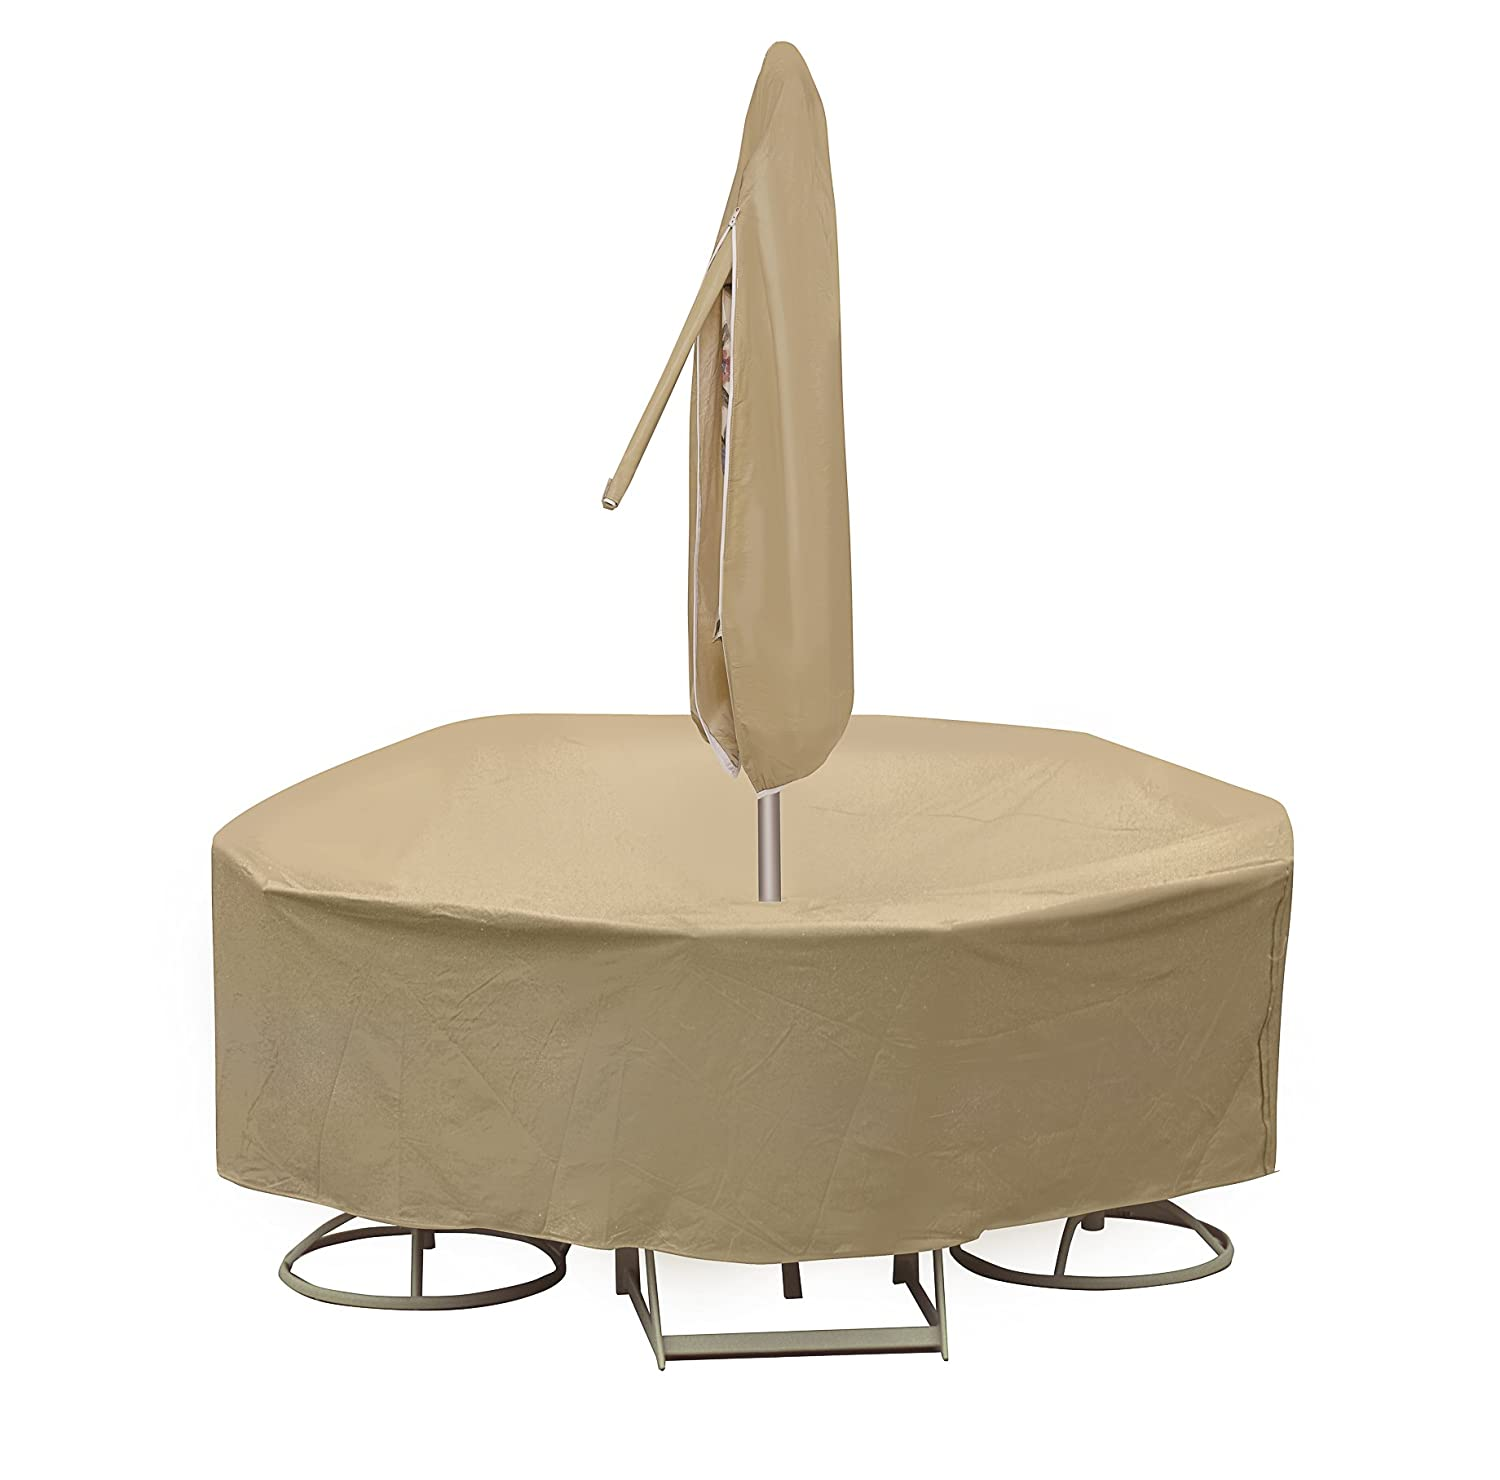 Protective Covers Weatherproof Patio Table and Highback Chair Set Cover, 48 Inch x 54 Inch Round Table, Tan - 1159-TN